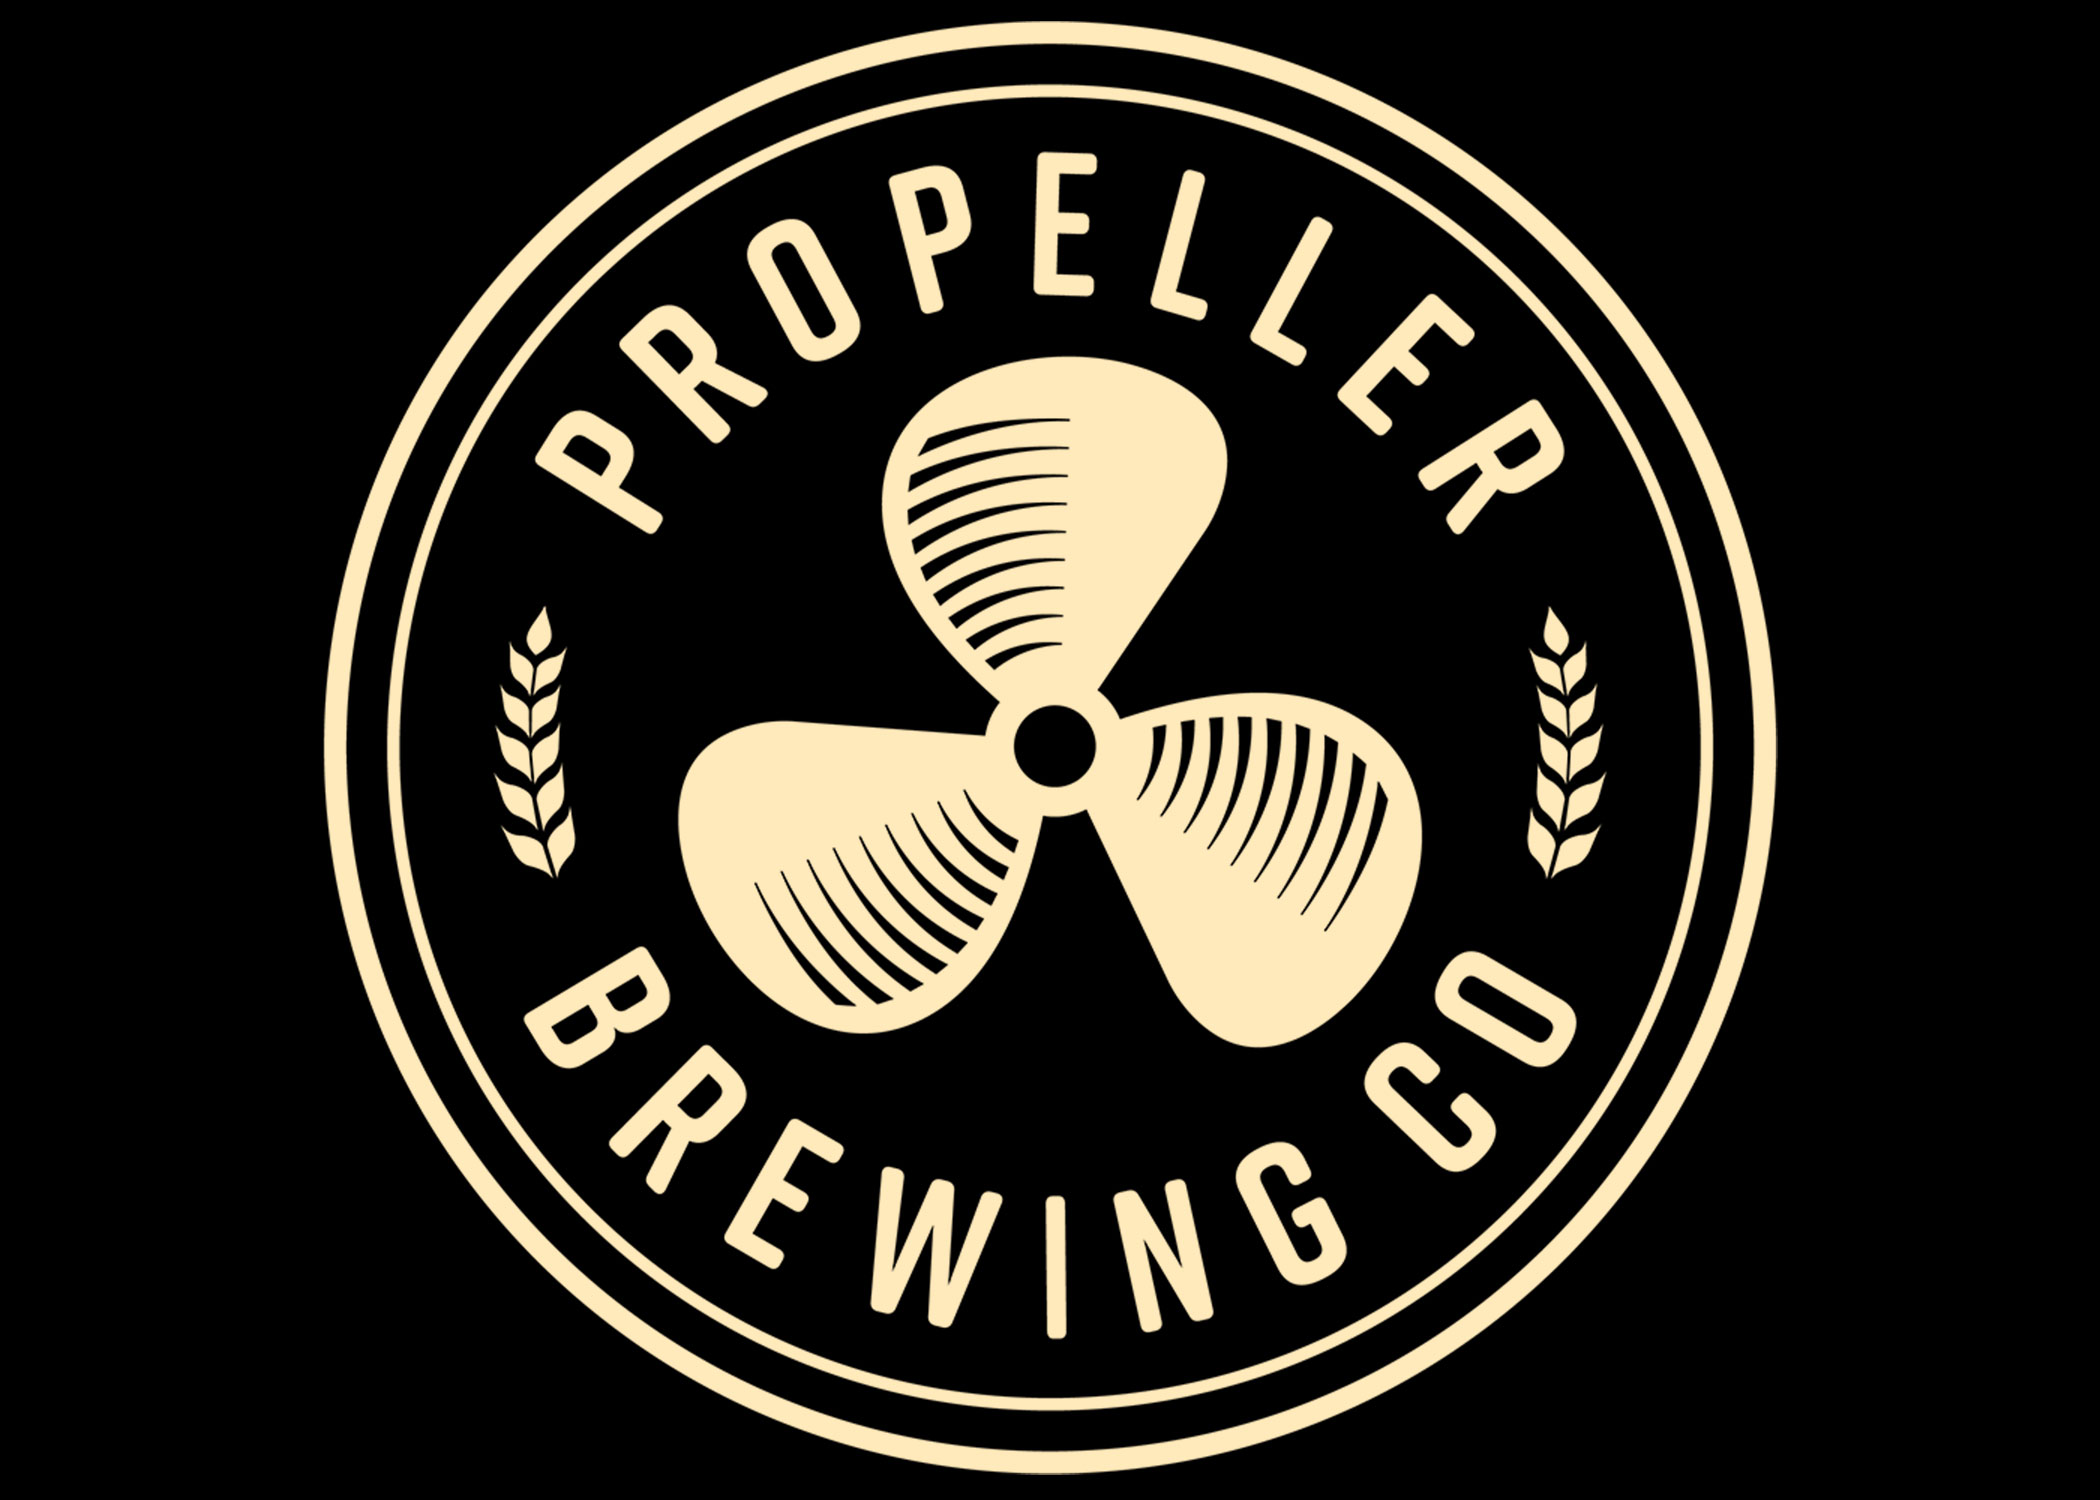 Check out Propeller Brewing Company